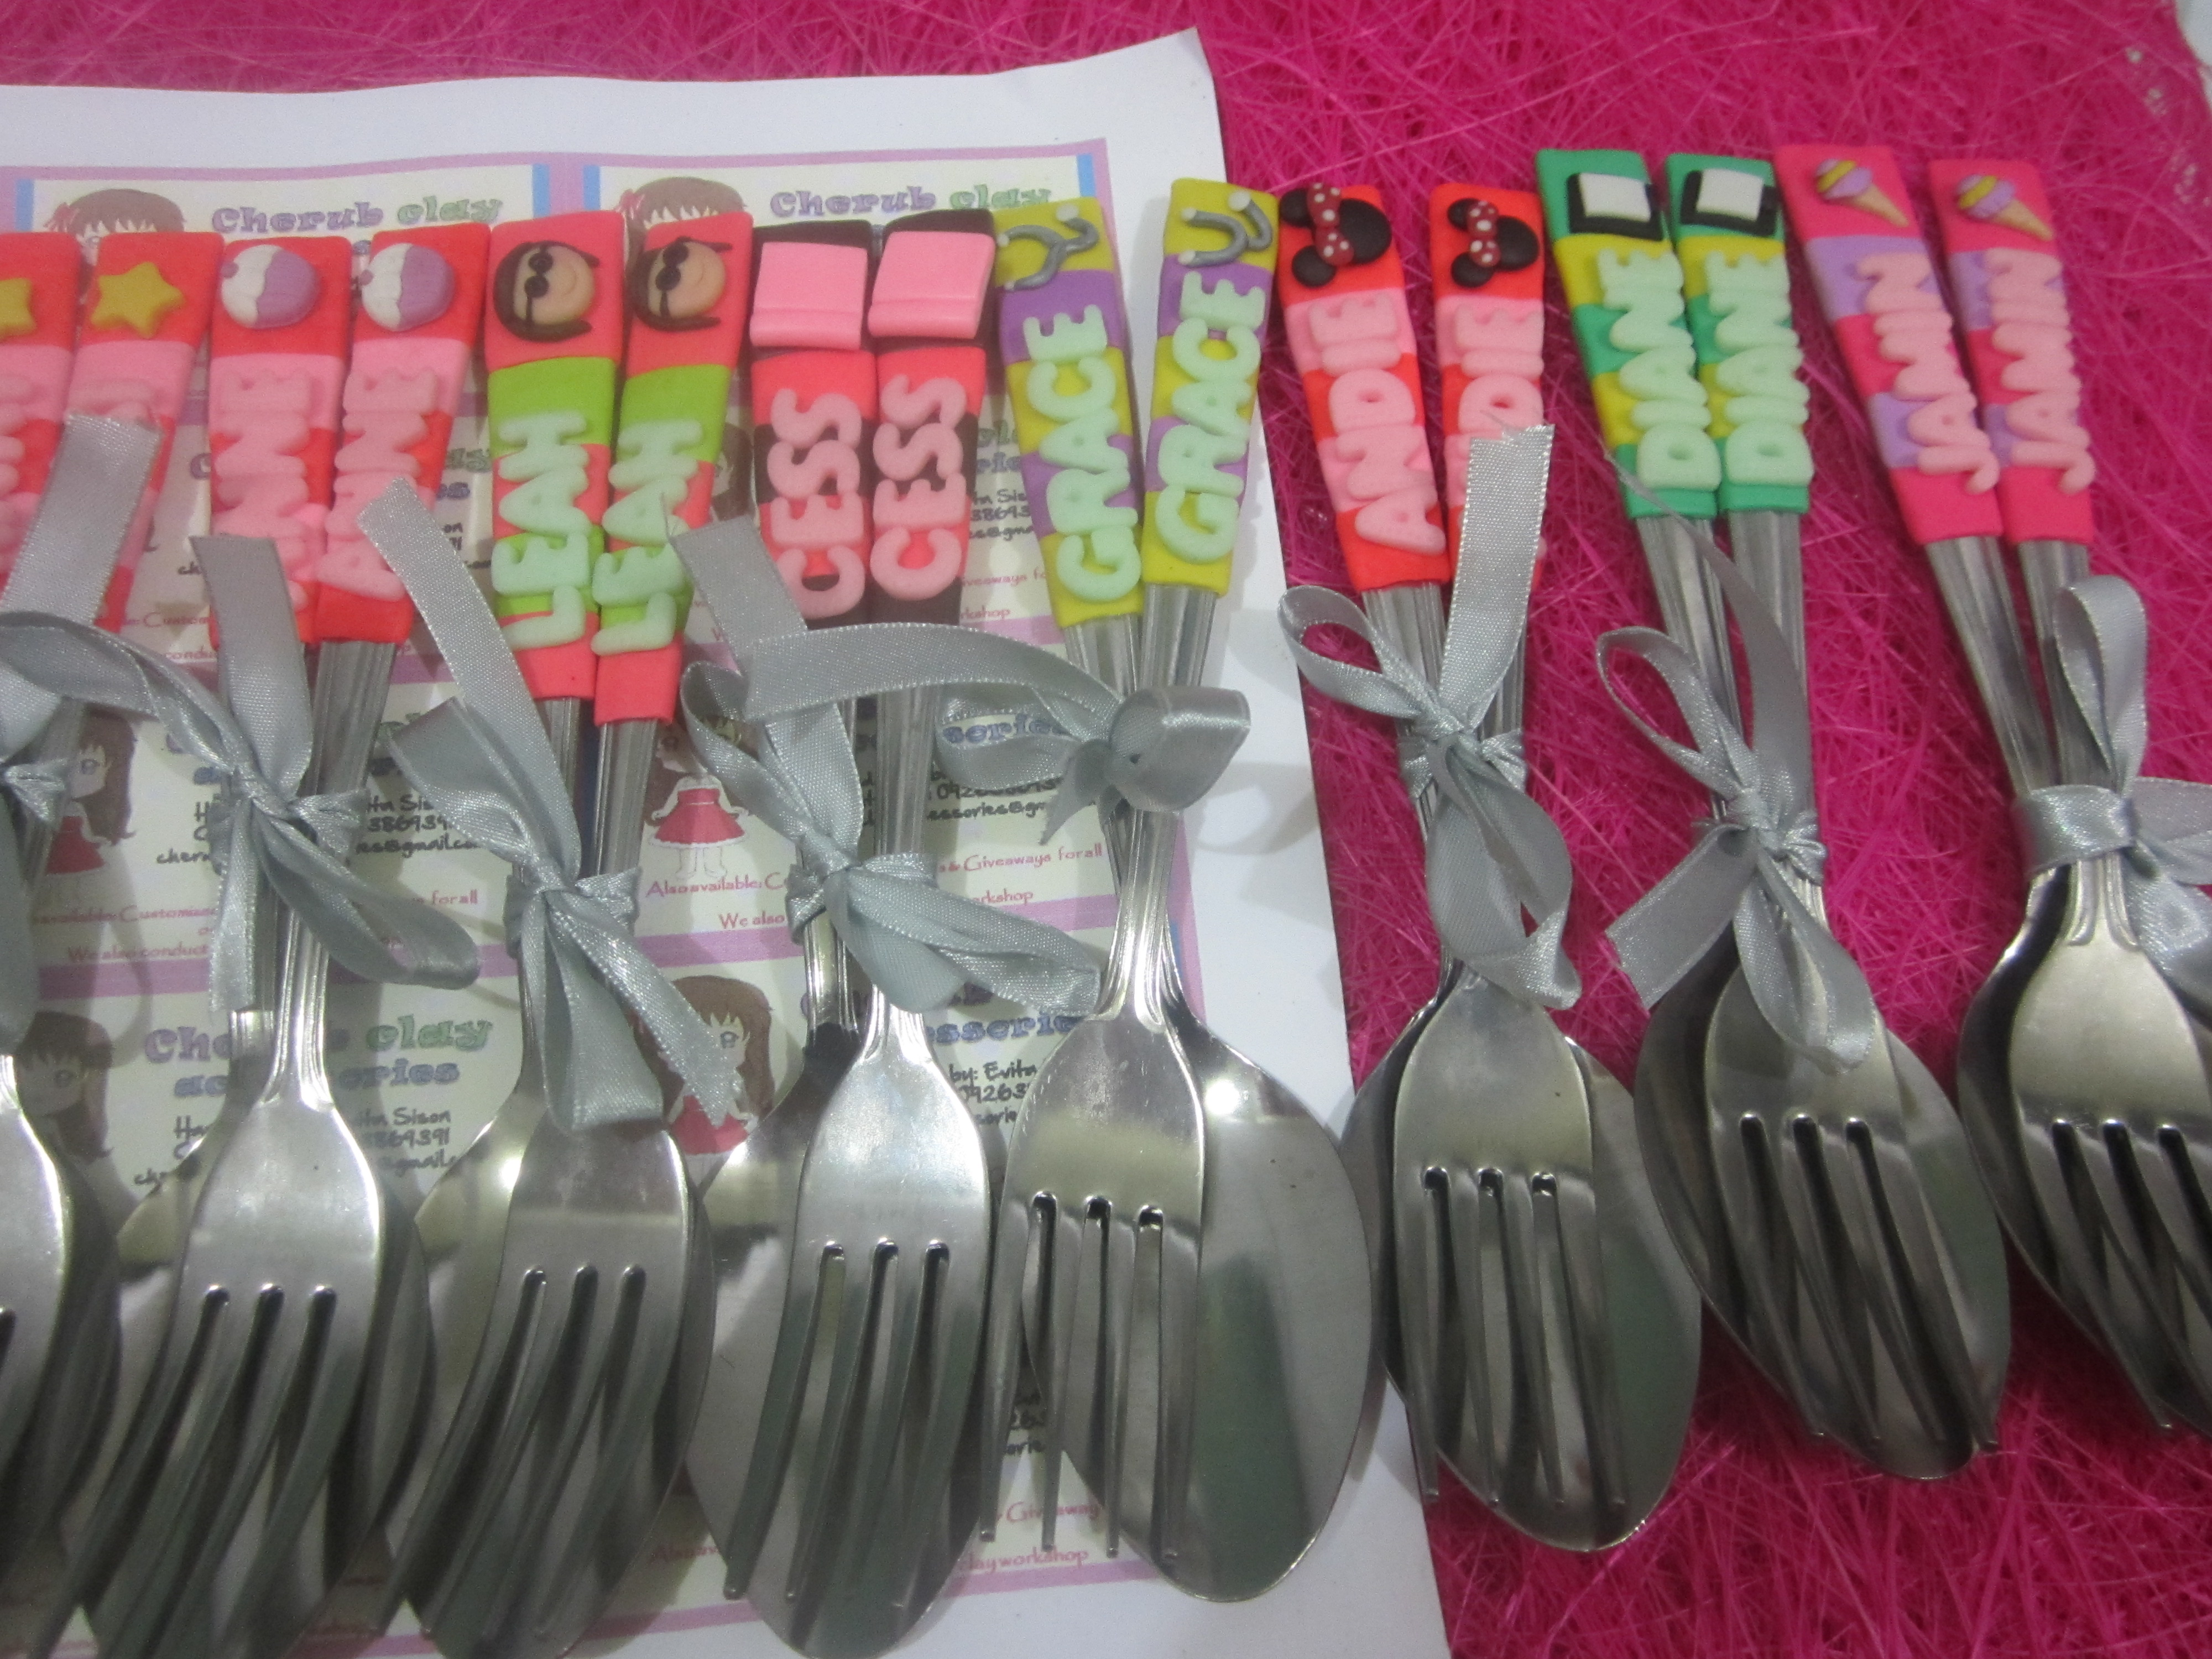 Personalized Spoon And Fork Cherub Clay